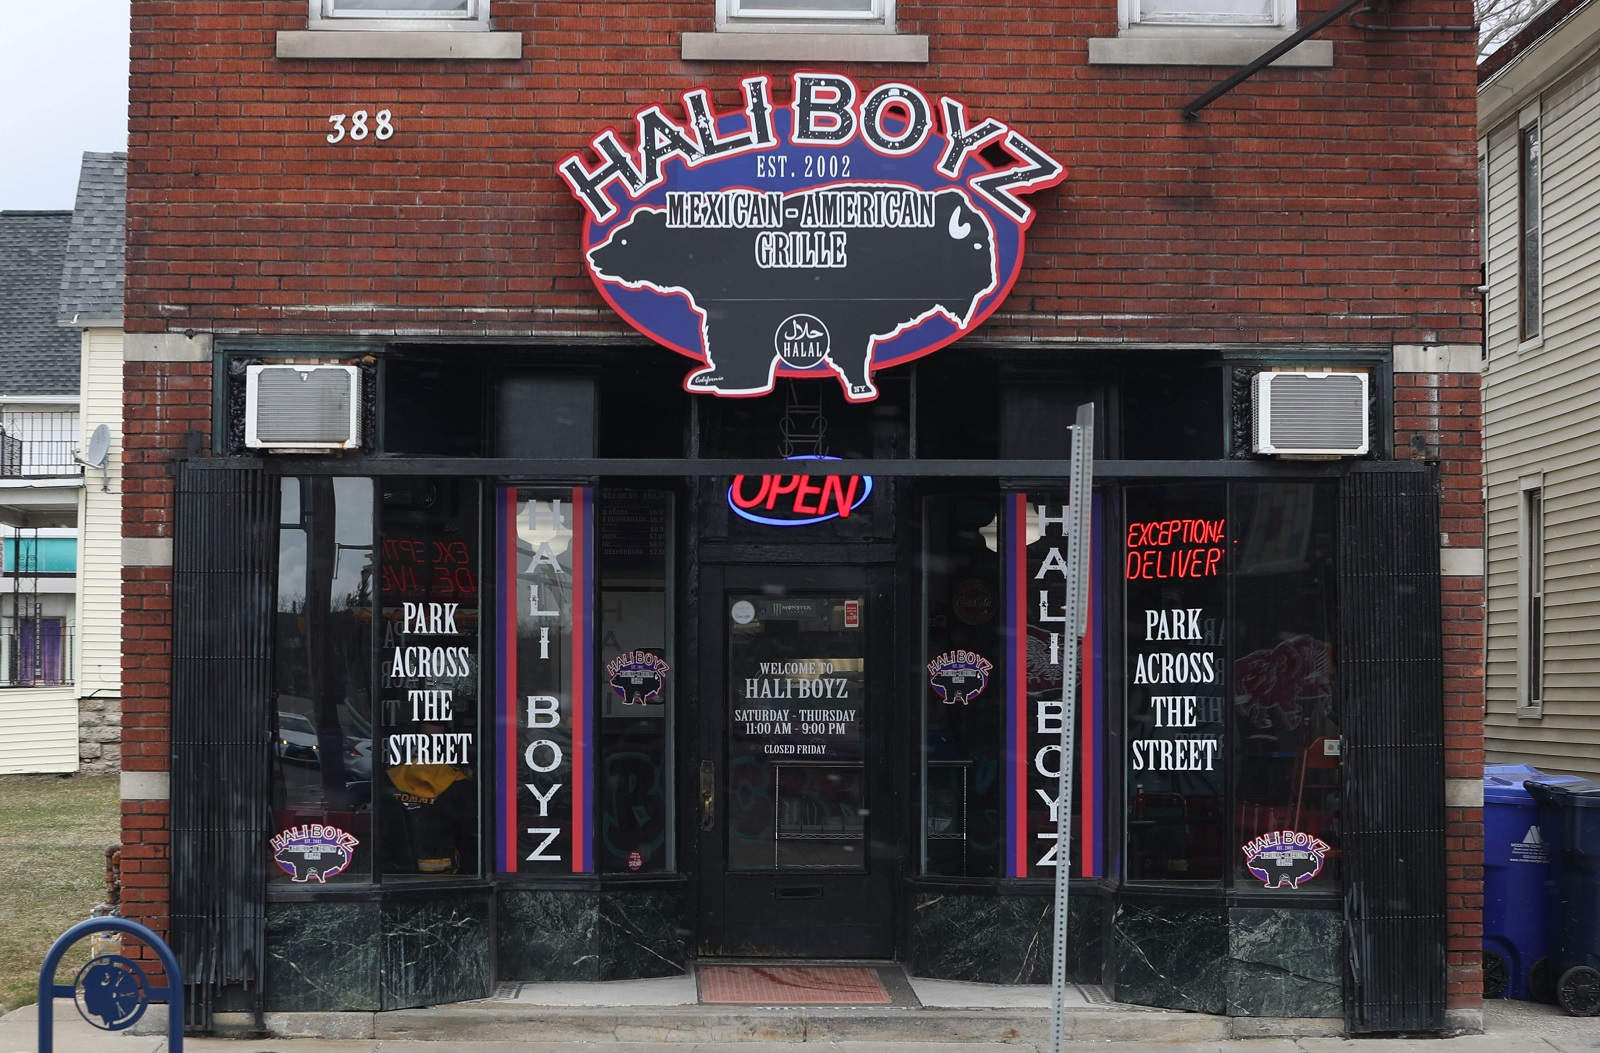 Hali Boyz brings LA street food to Buffalo – with a halal